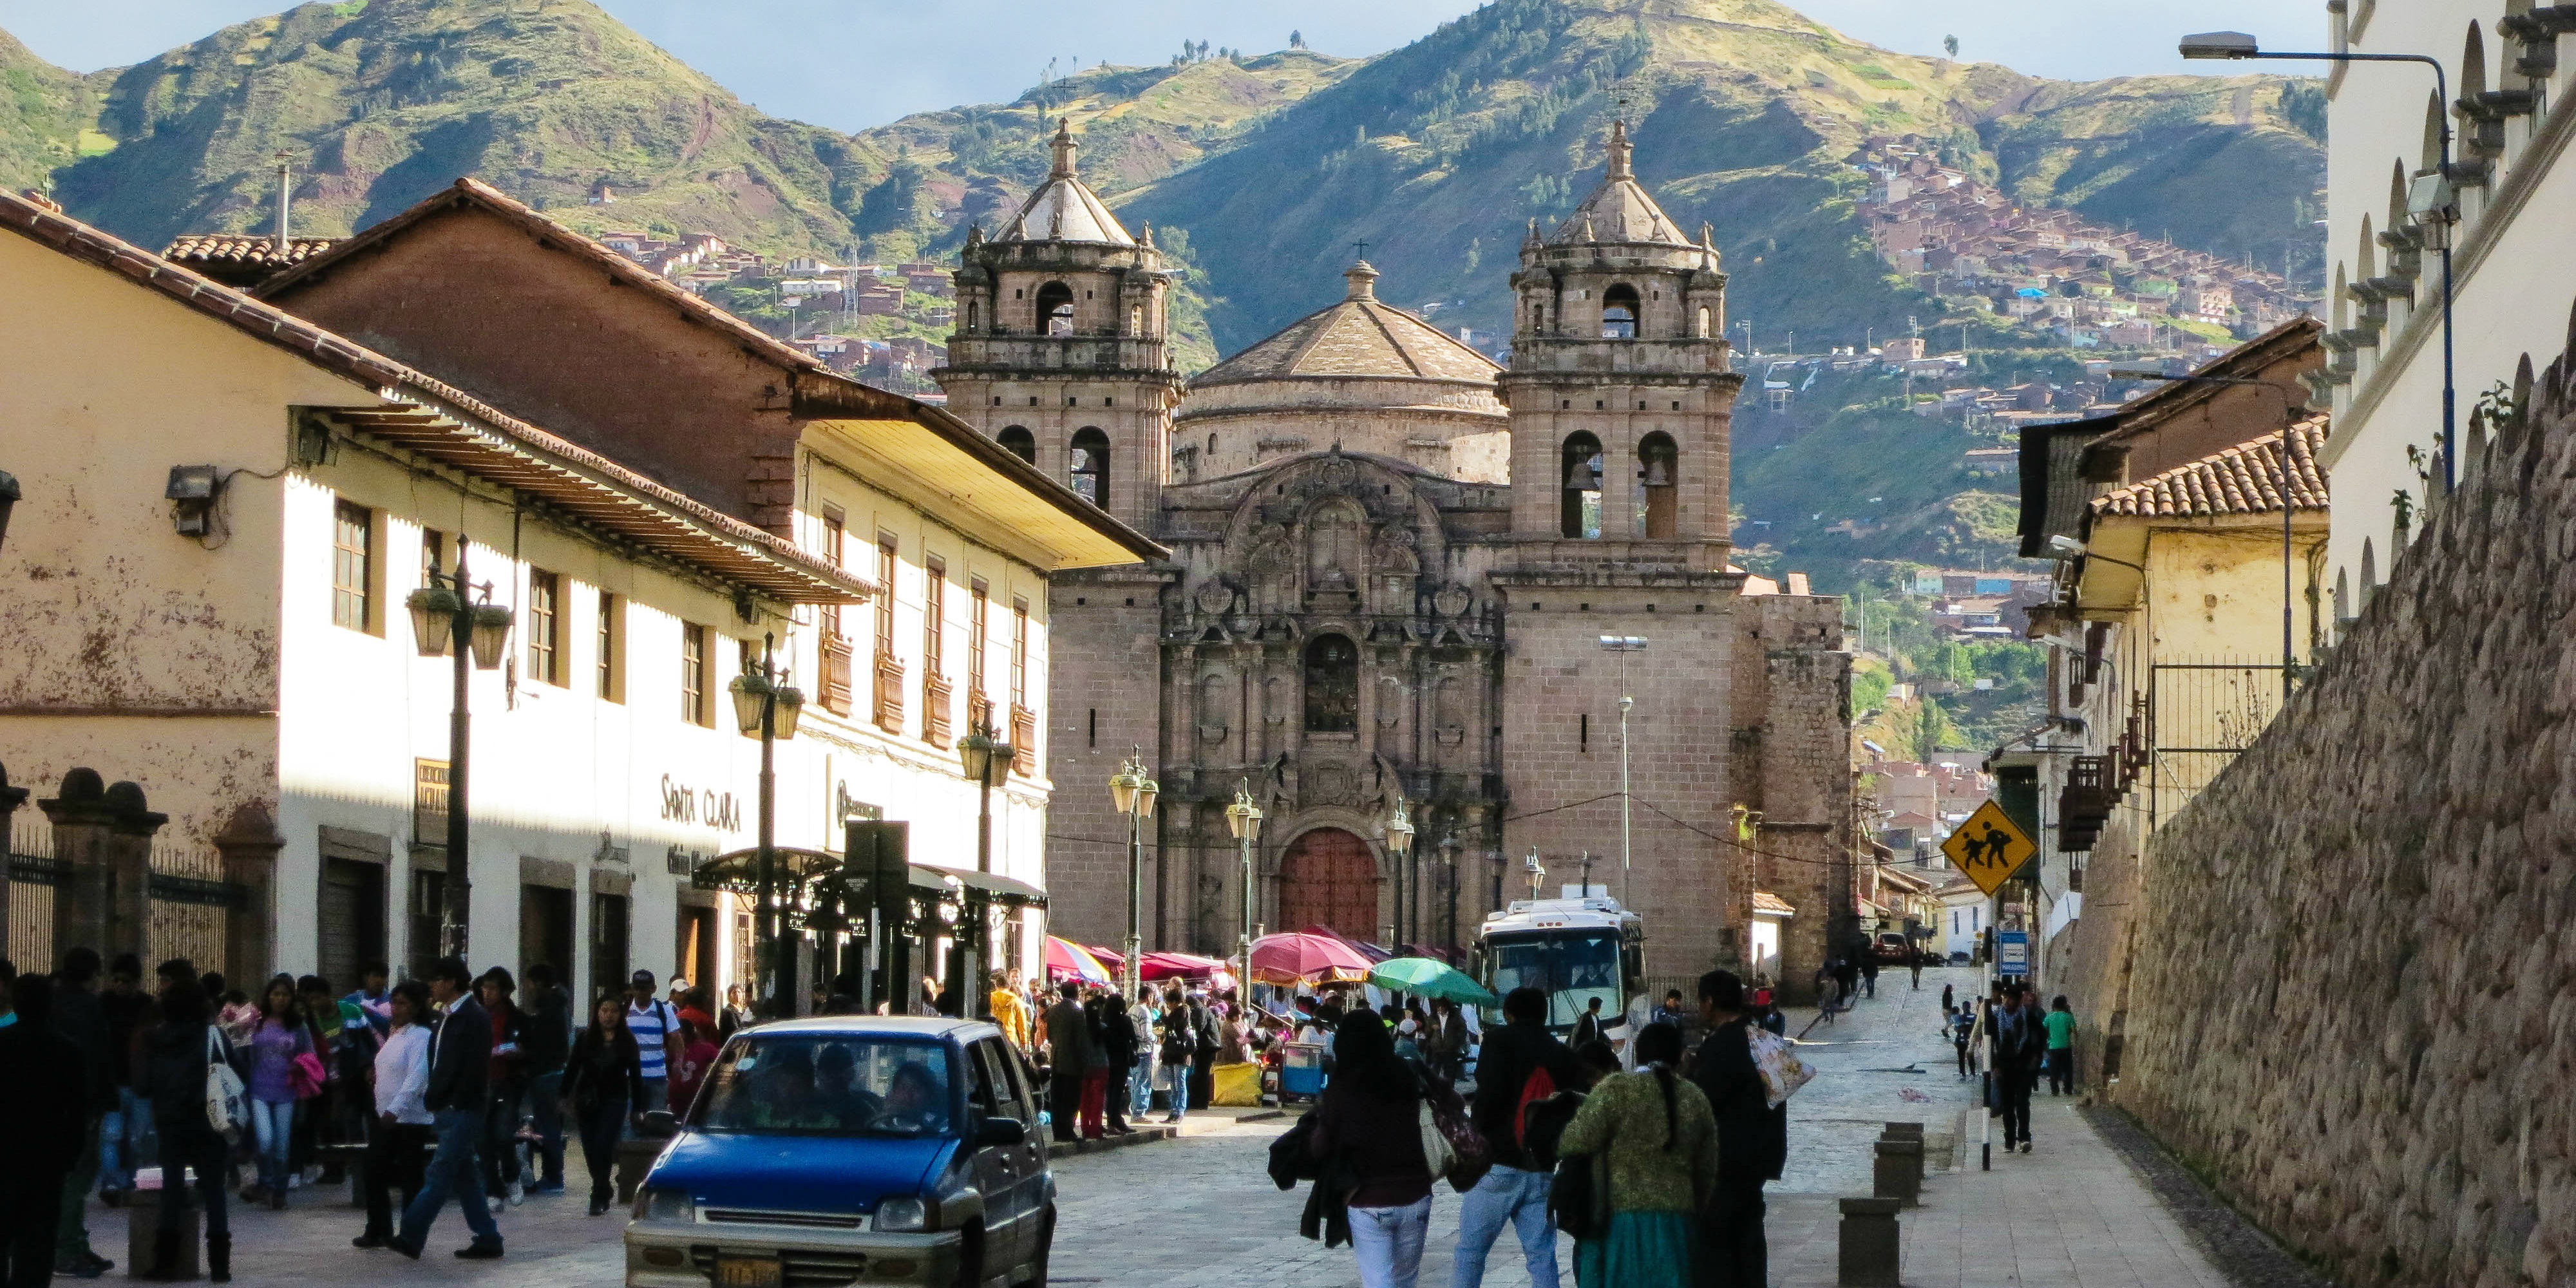 The city of Cusco was declared the capital of the Inca Empire, which helped to spread the quechua language.